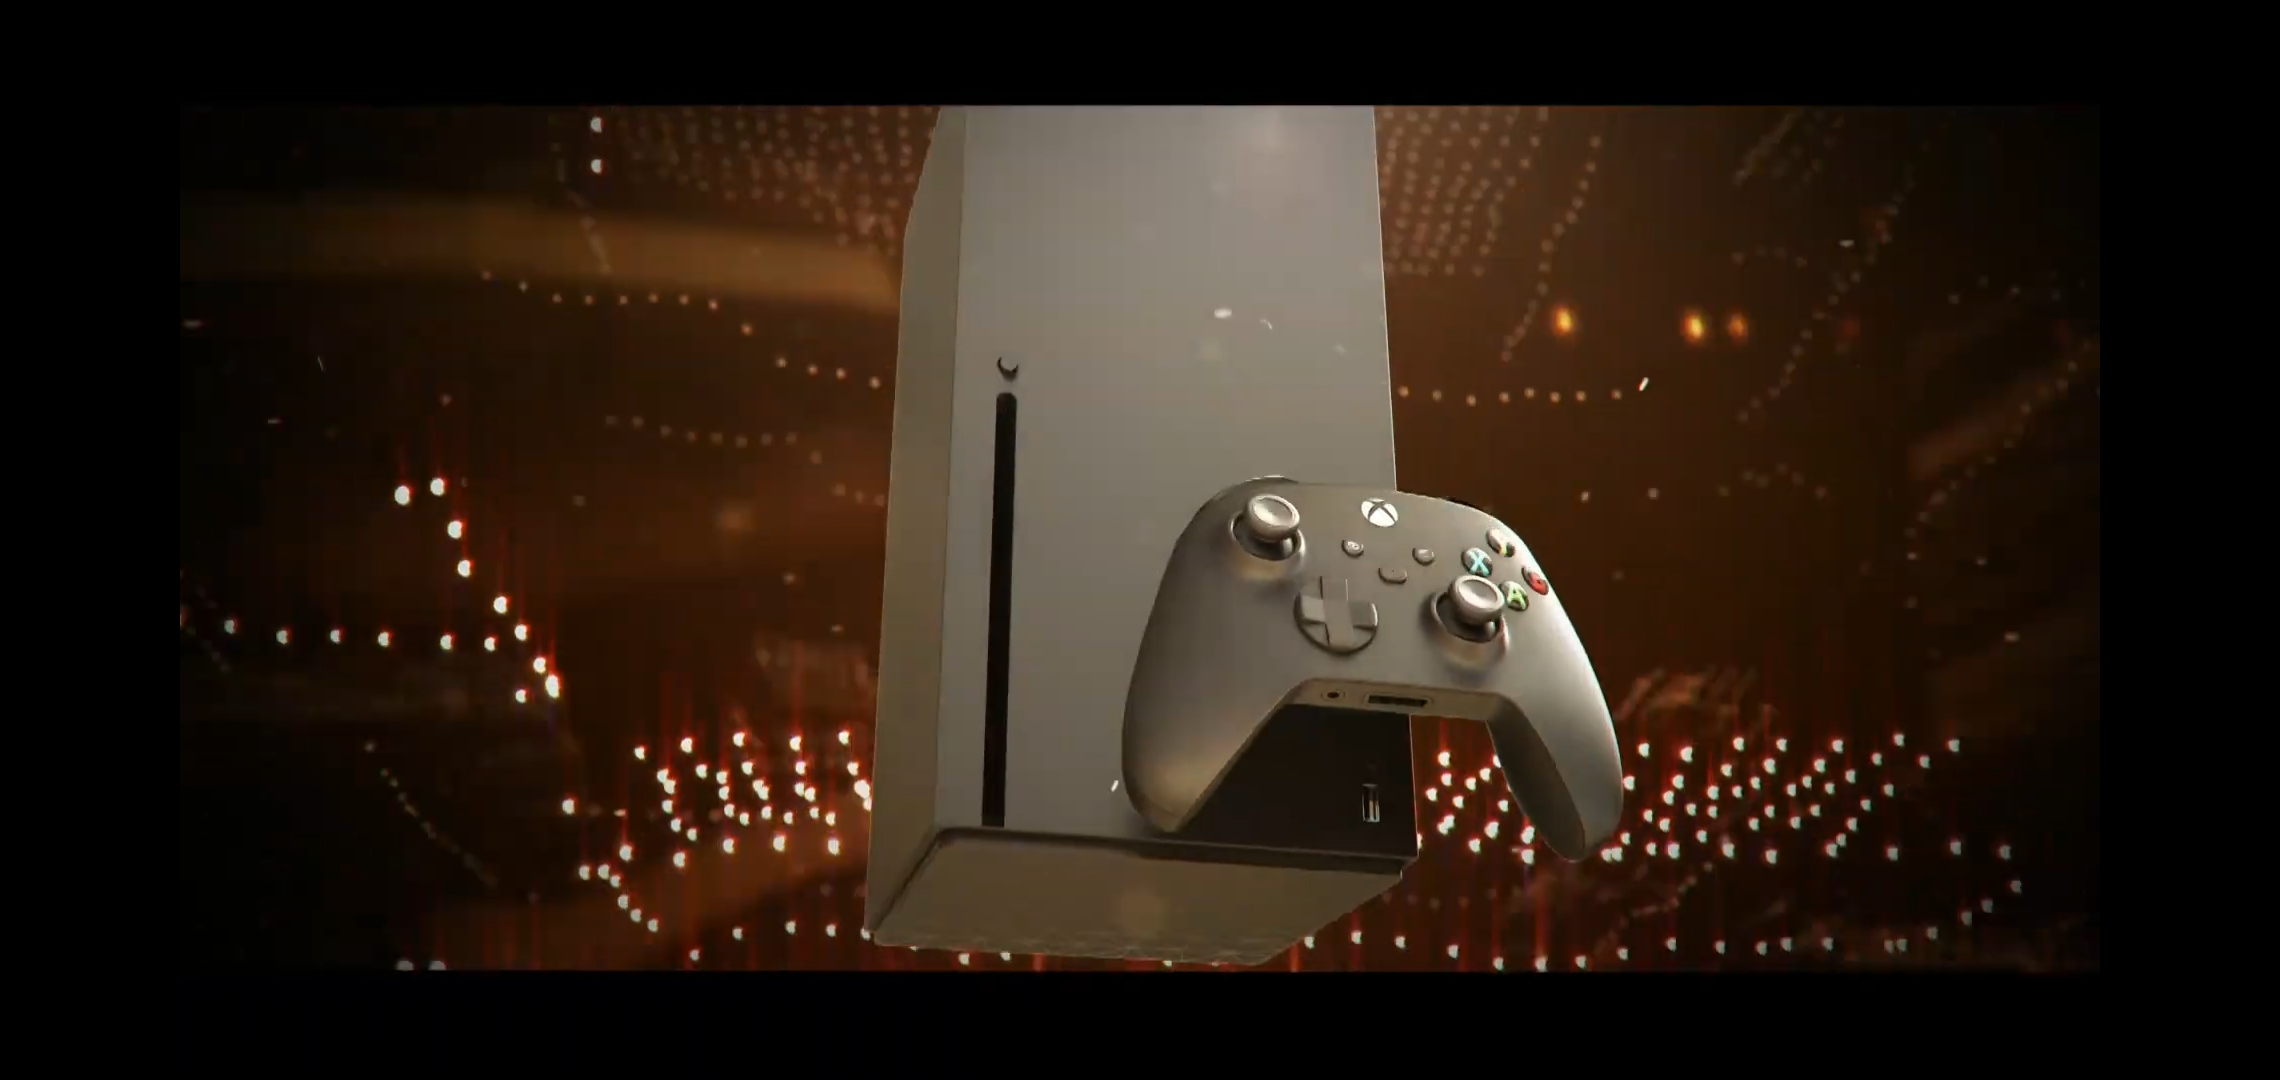 Xbox Series X front panel AMD CES 2020